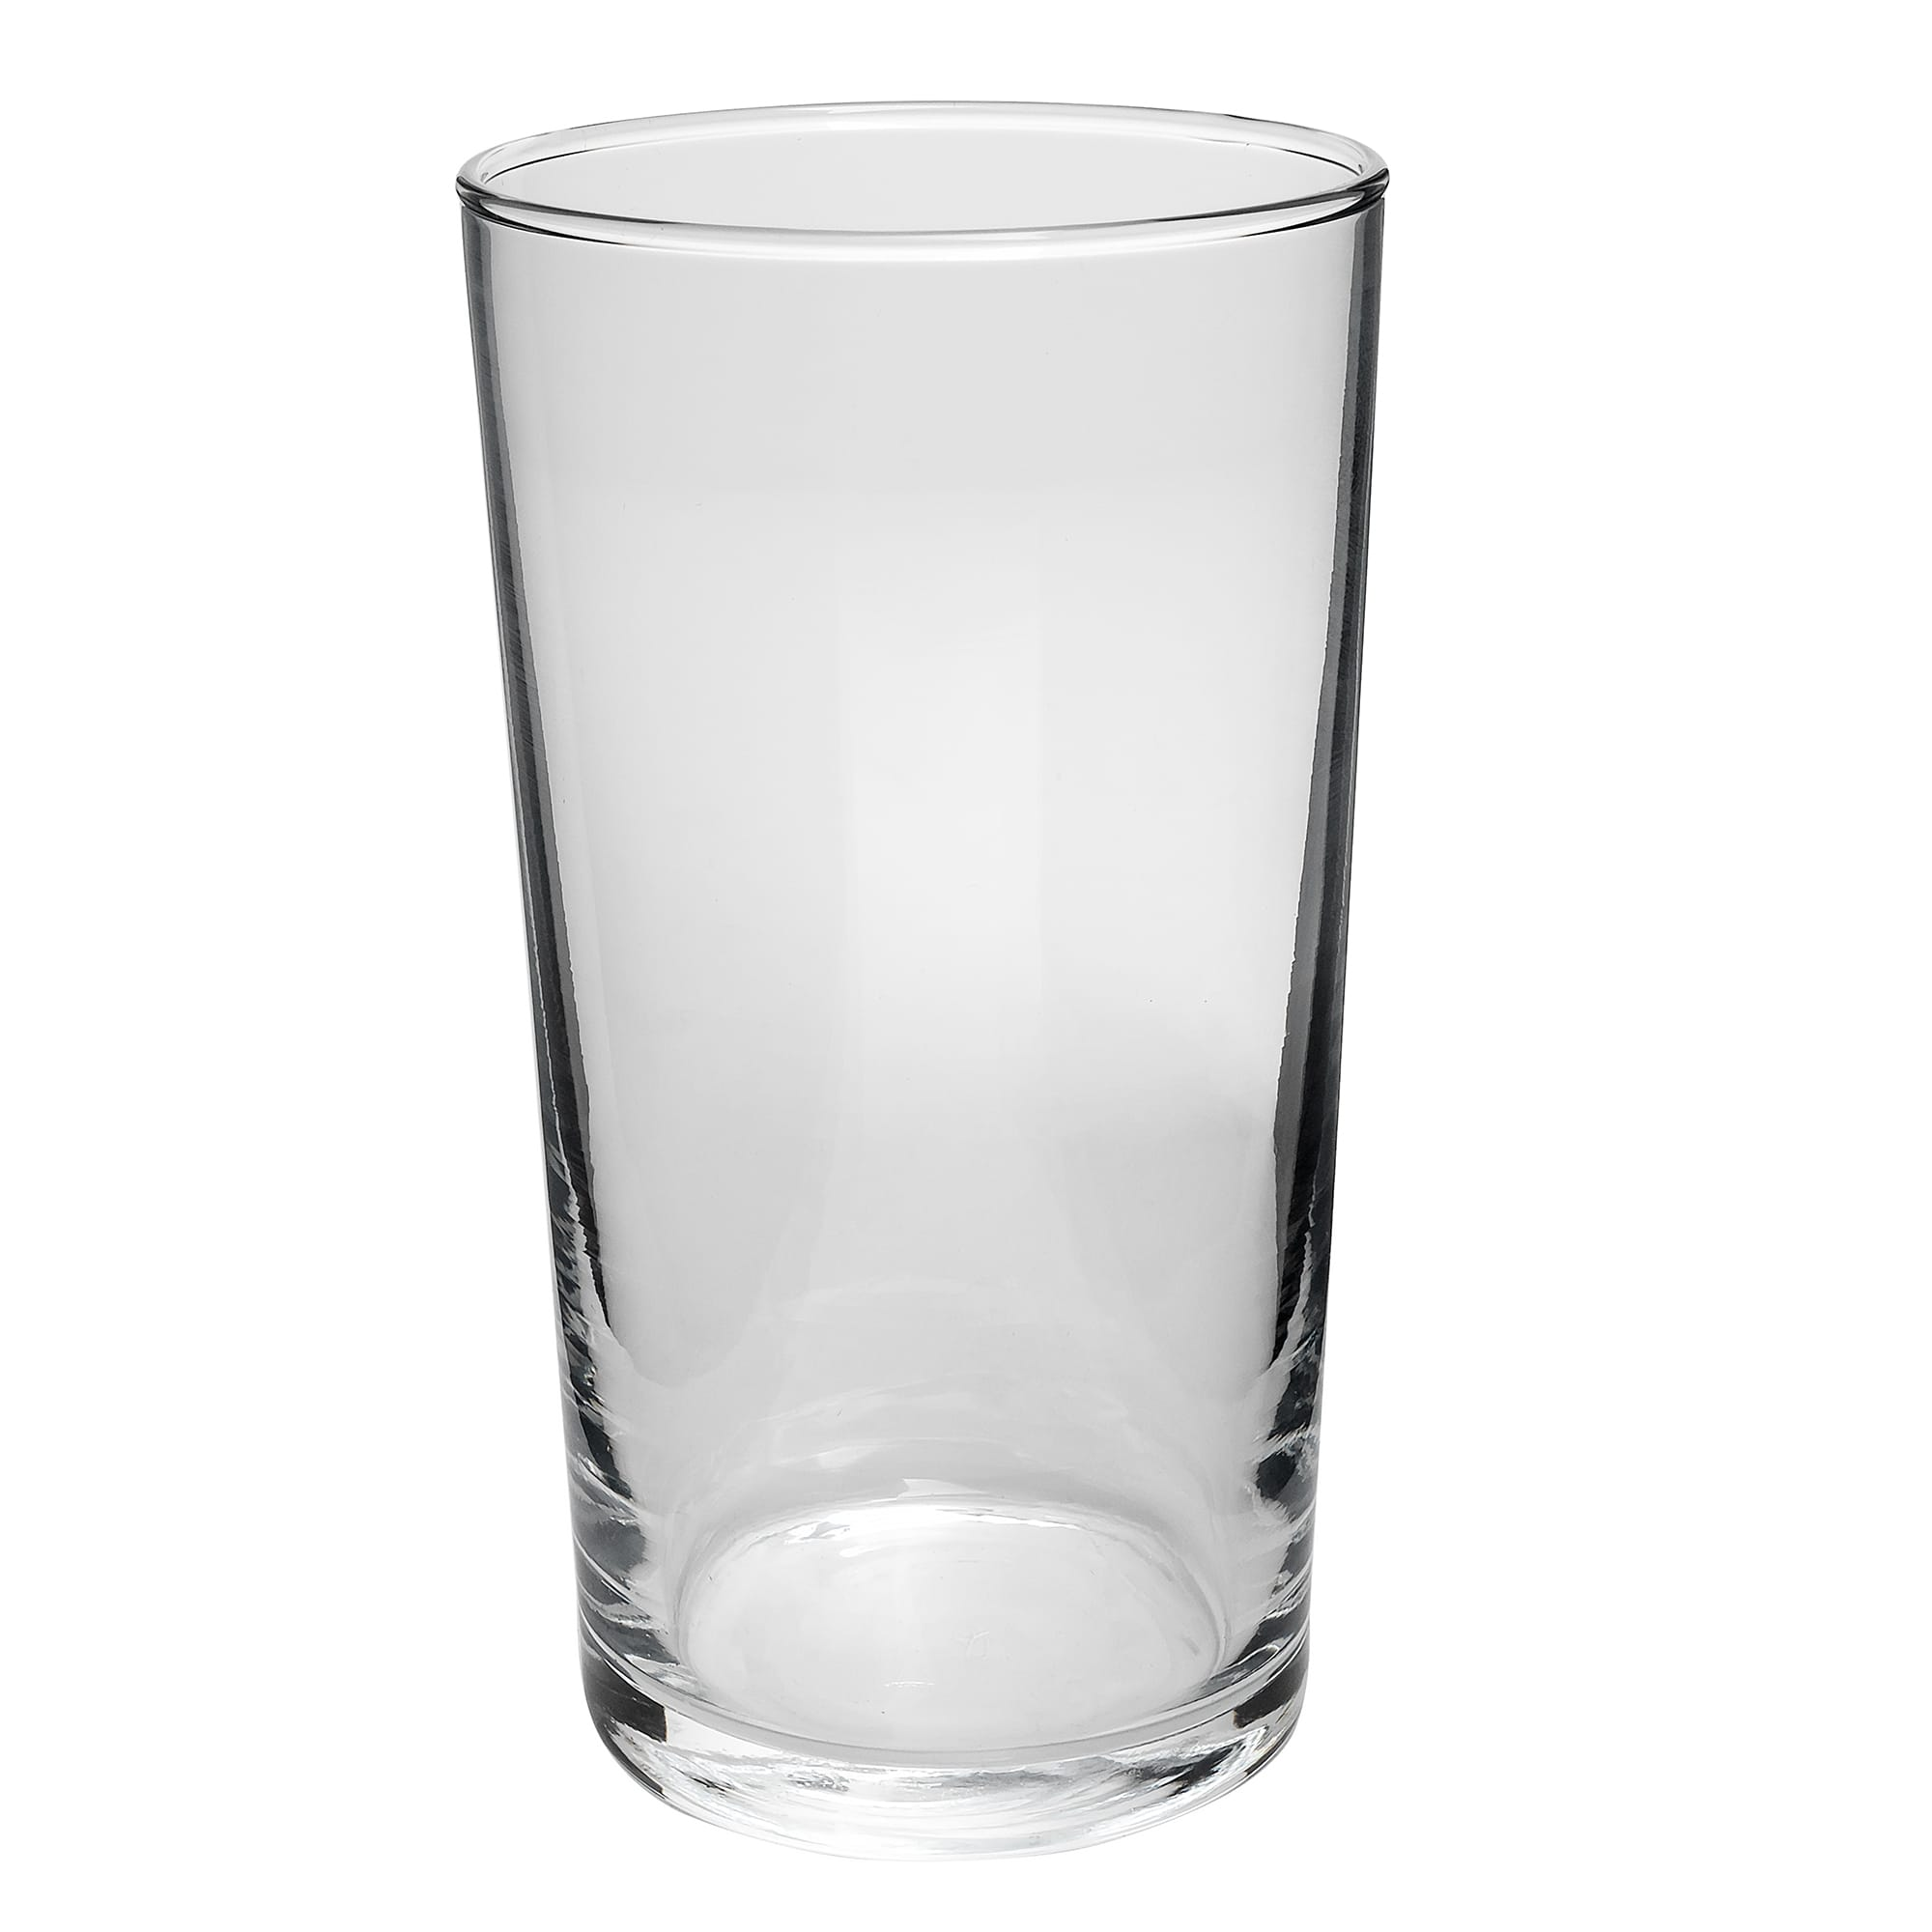 Libbey 53 10 oz Straight Sided Collins Glass - Safedge Rim Guarantee